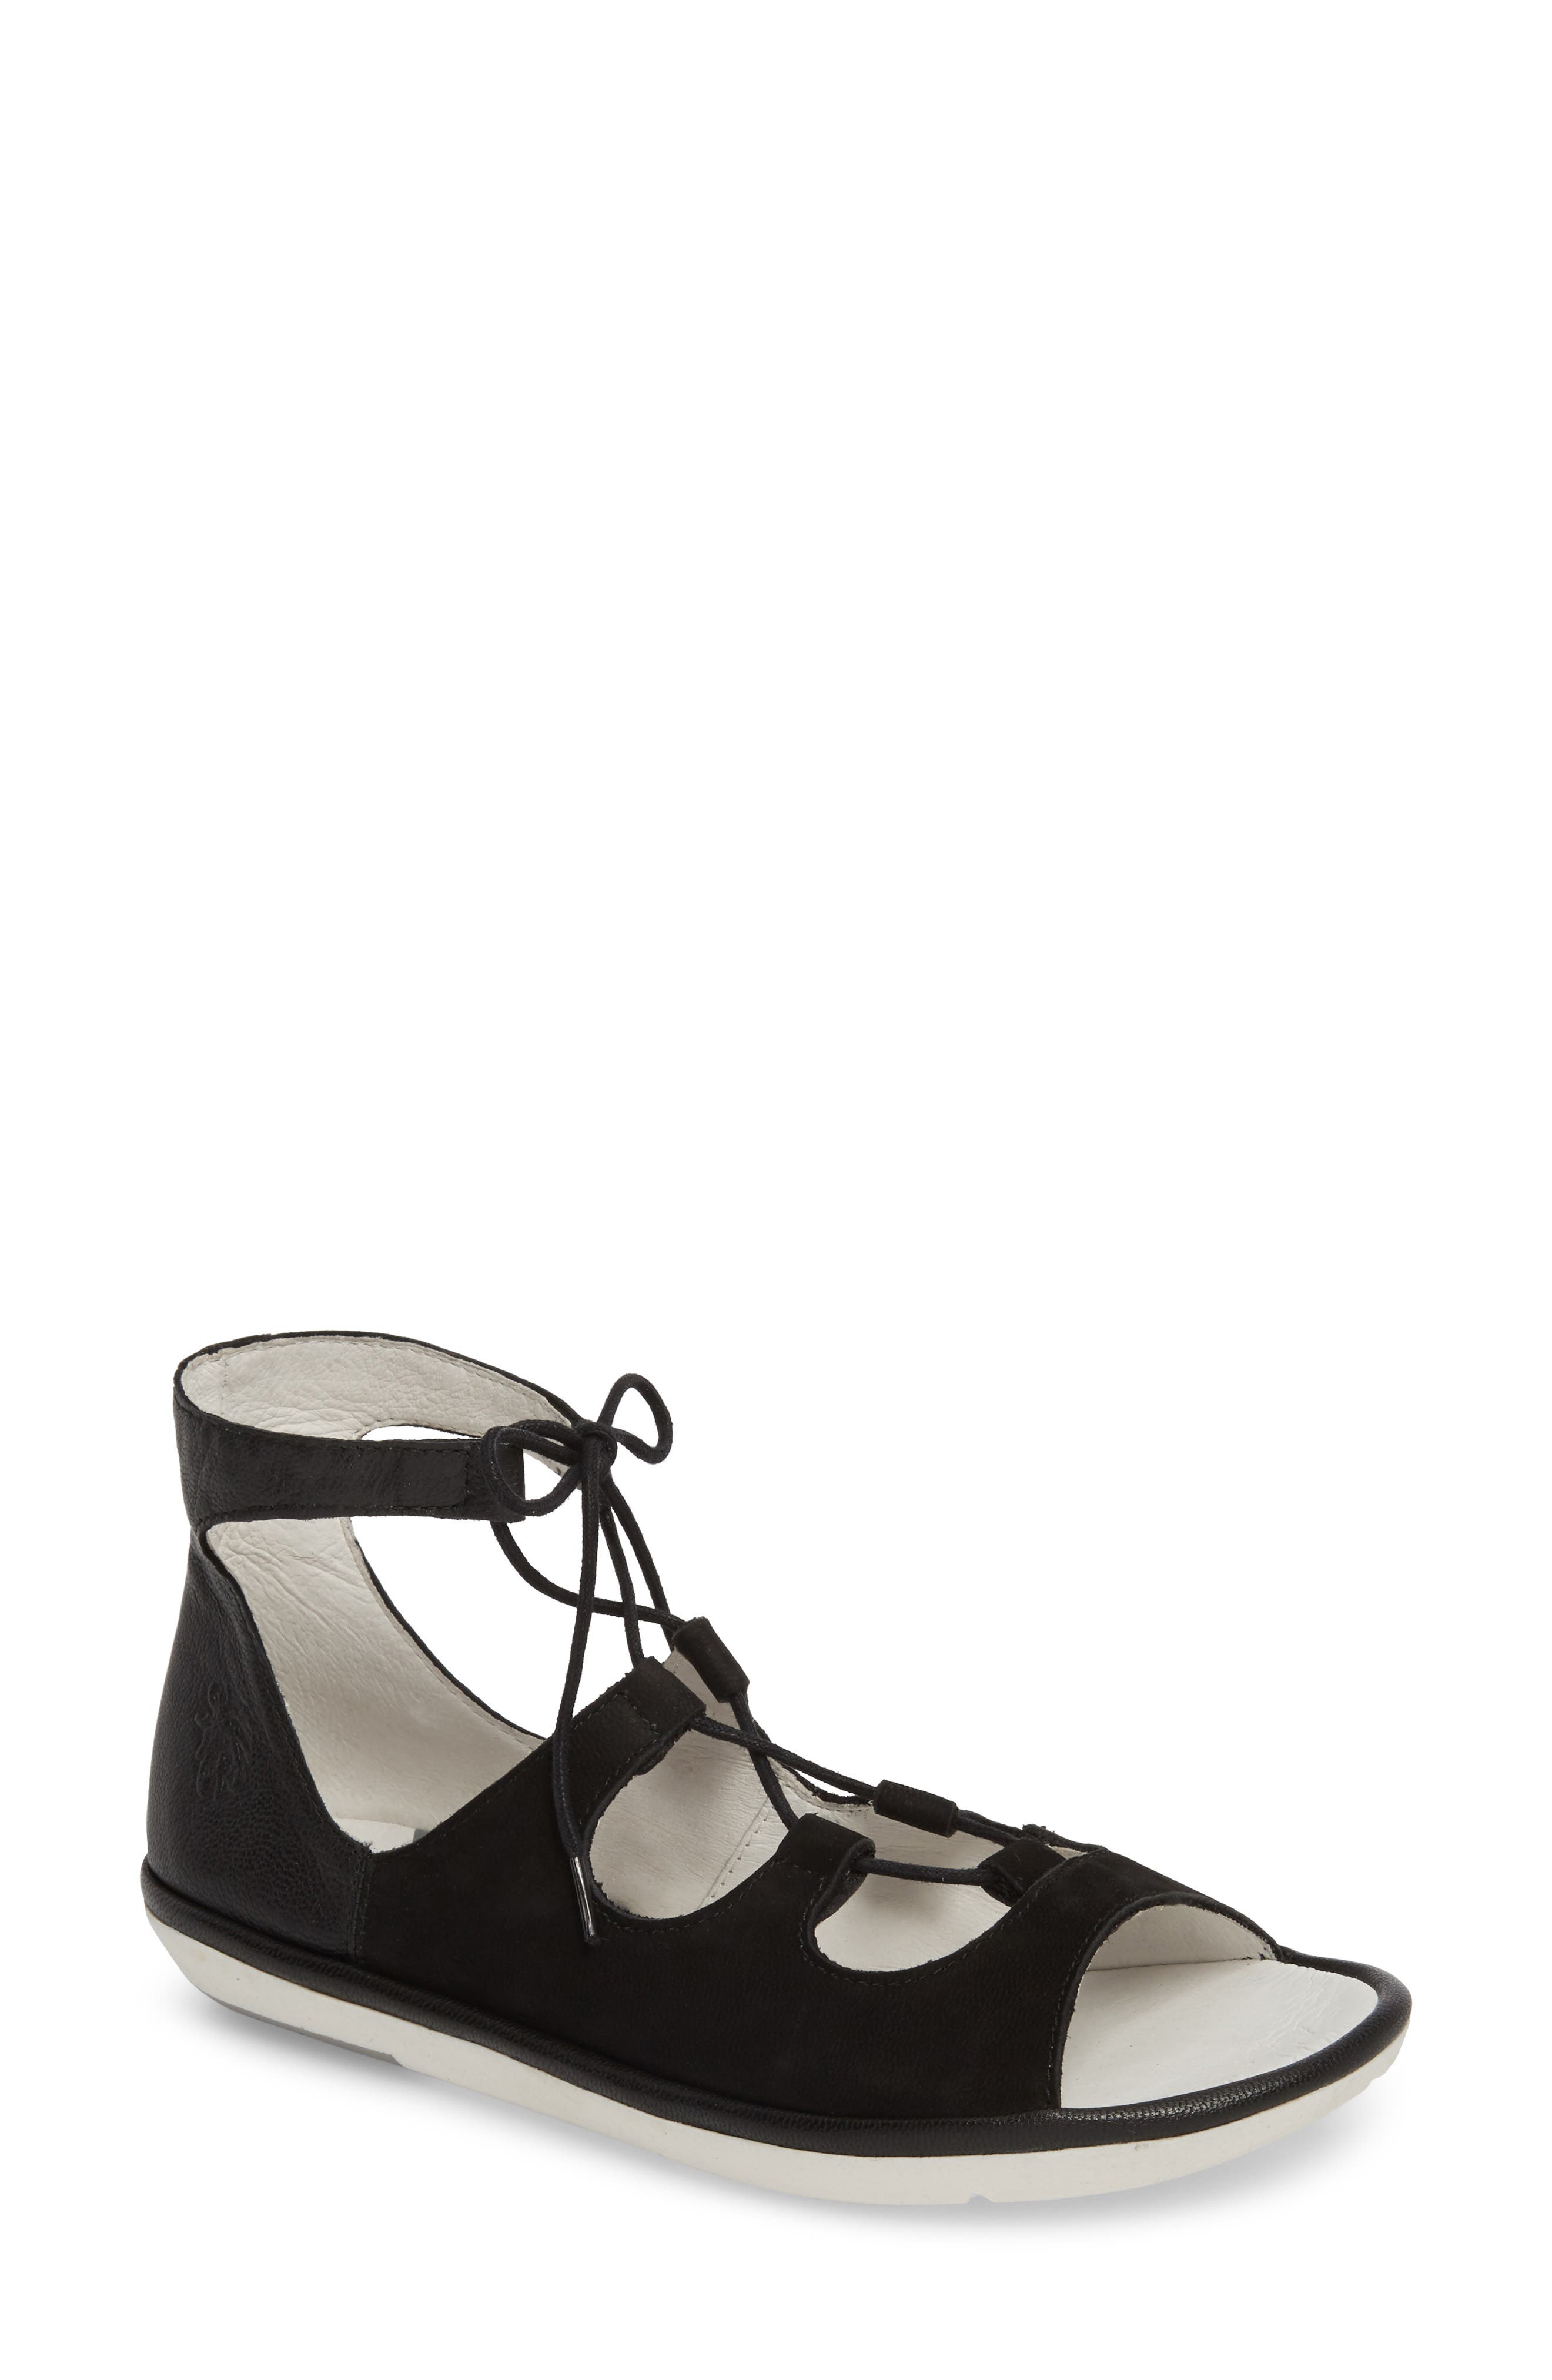 Fly London Mura Ghillie Sandal - Black